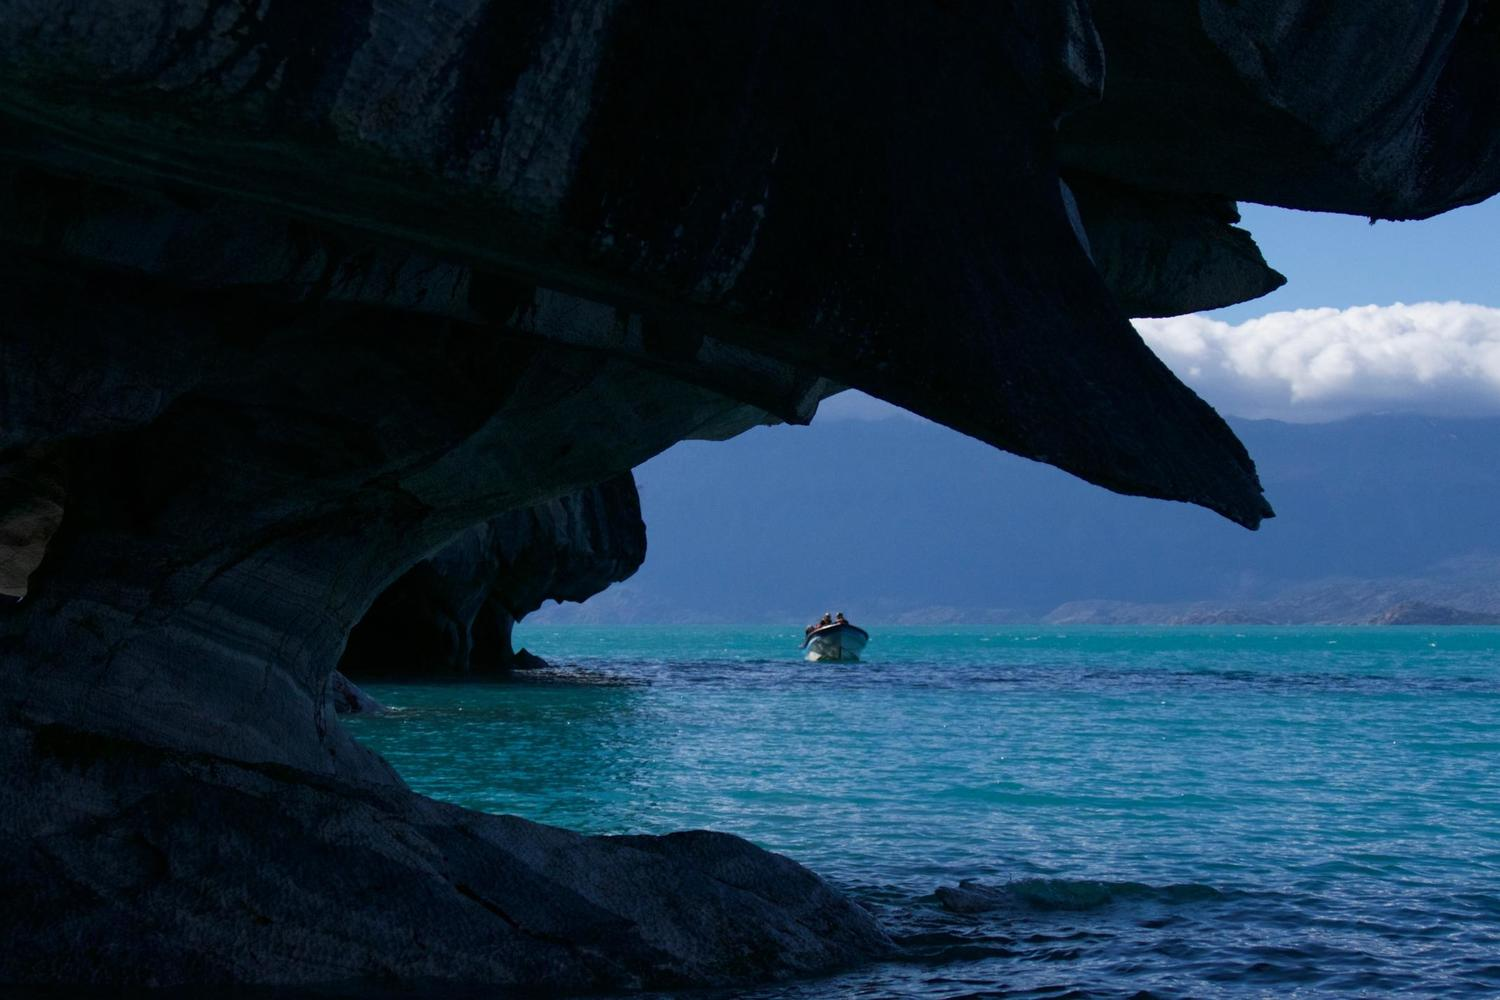 Exploring the marble caves on Lago General Carrera